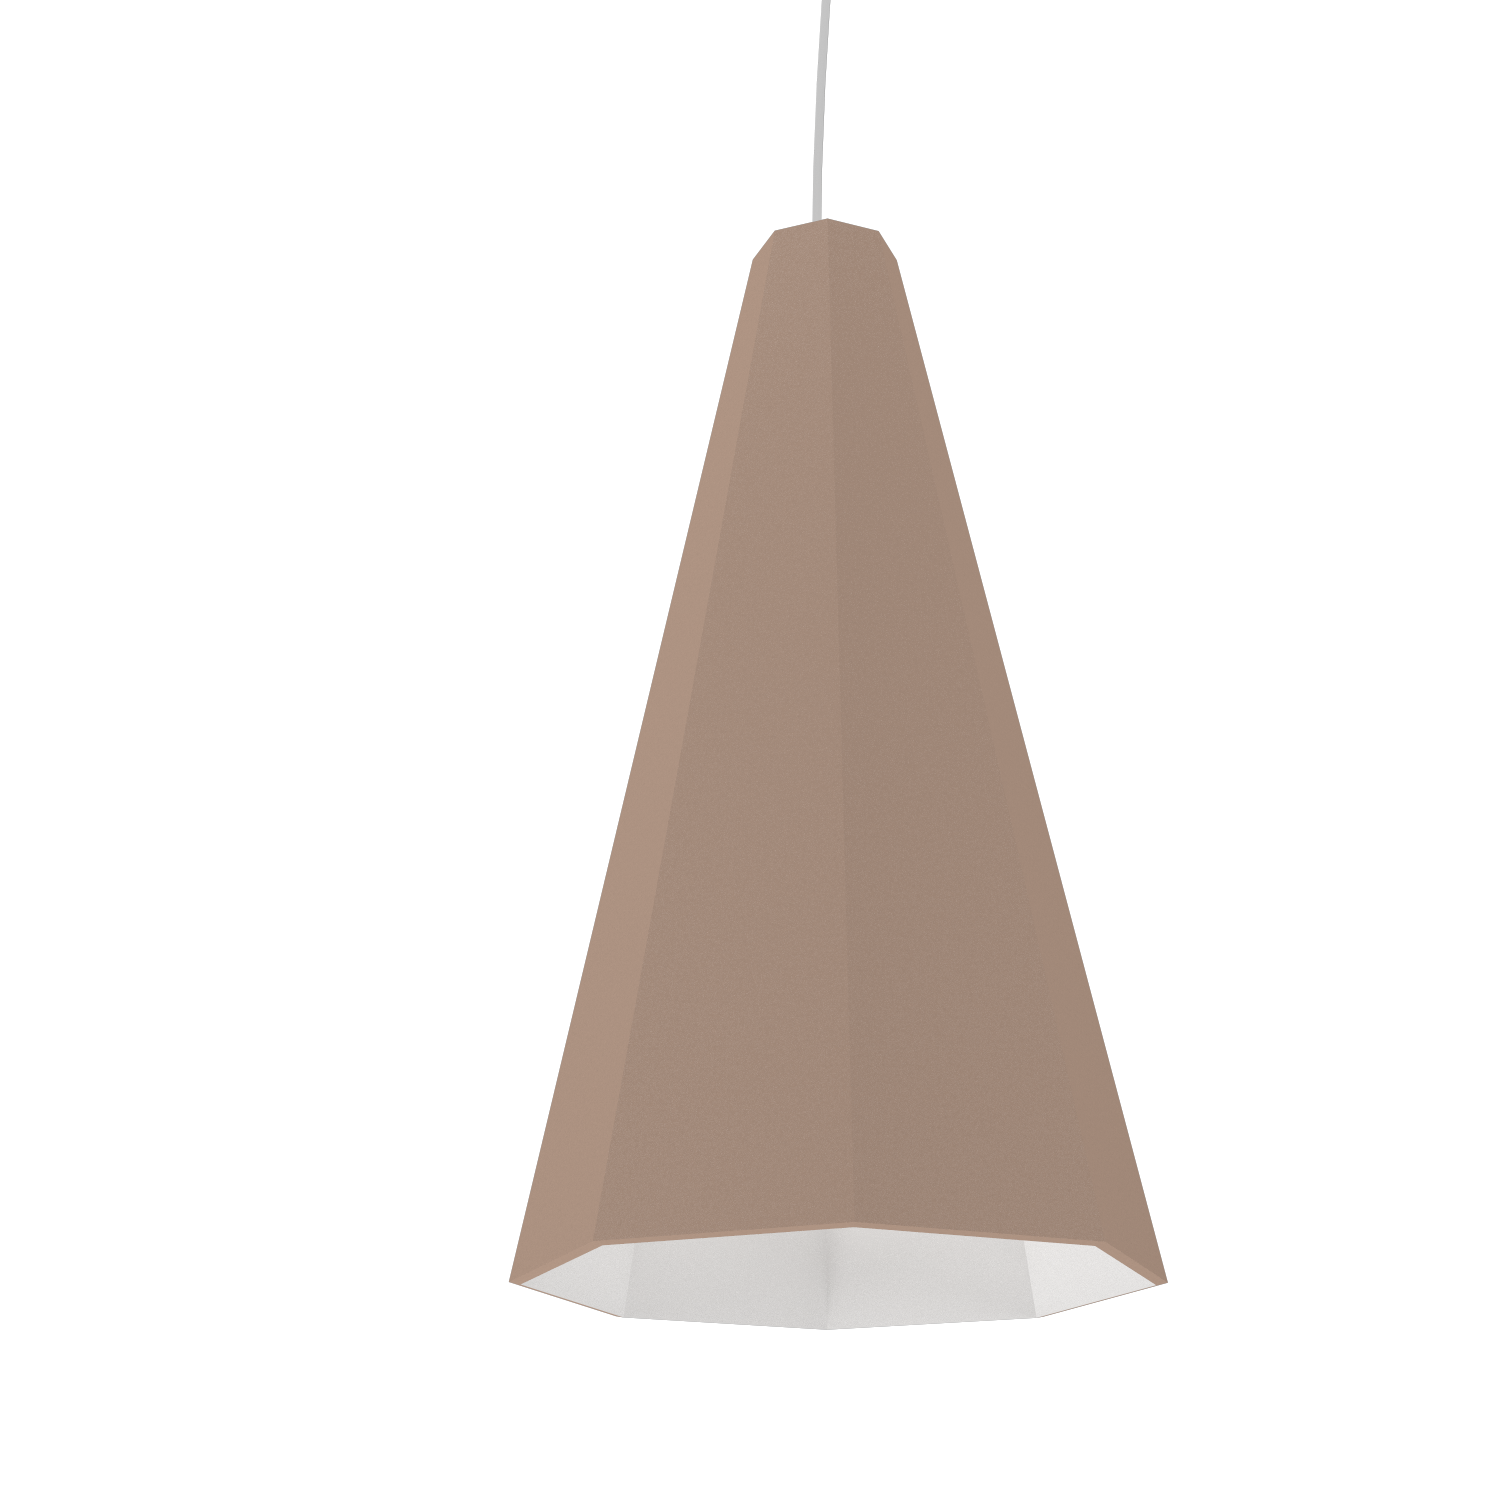 Pendant Lamp Accord Facetado 1231 - Facetada Line Accord Lighting | 33. Bronze